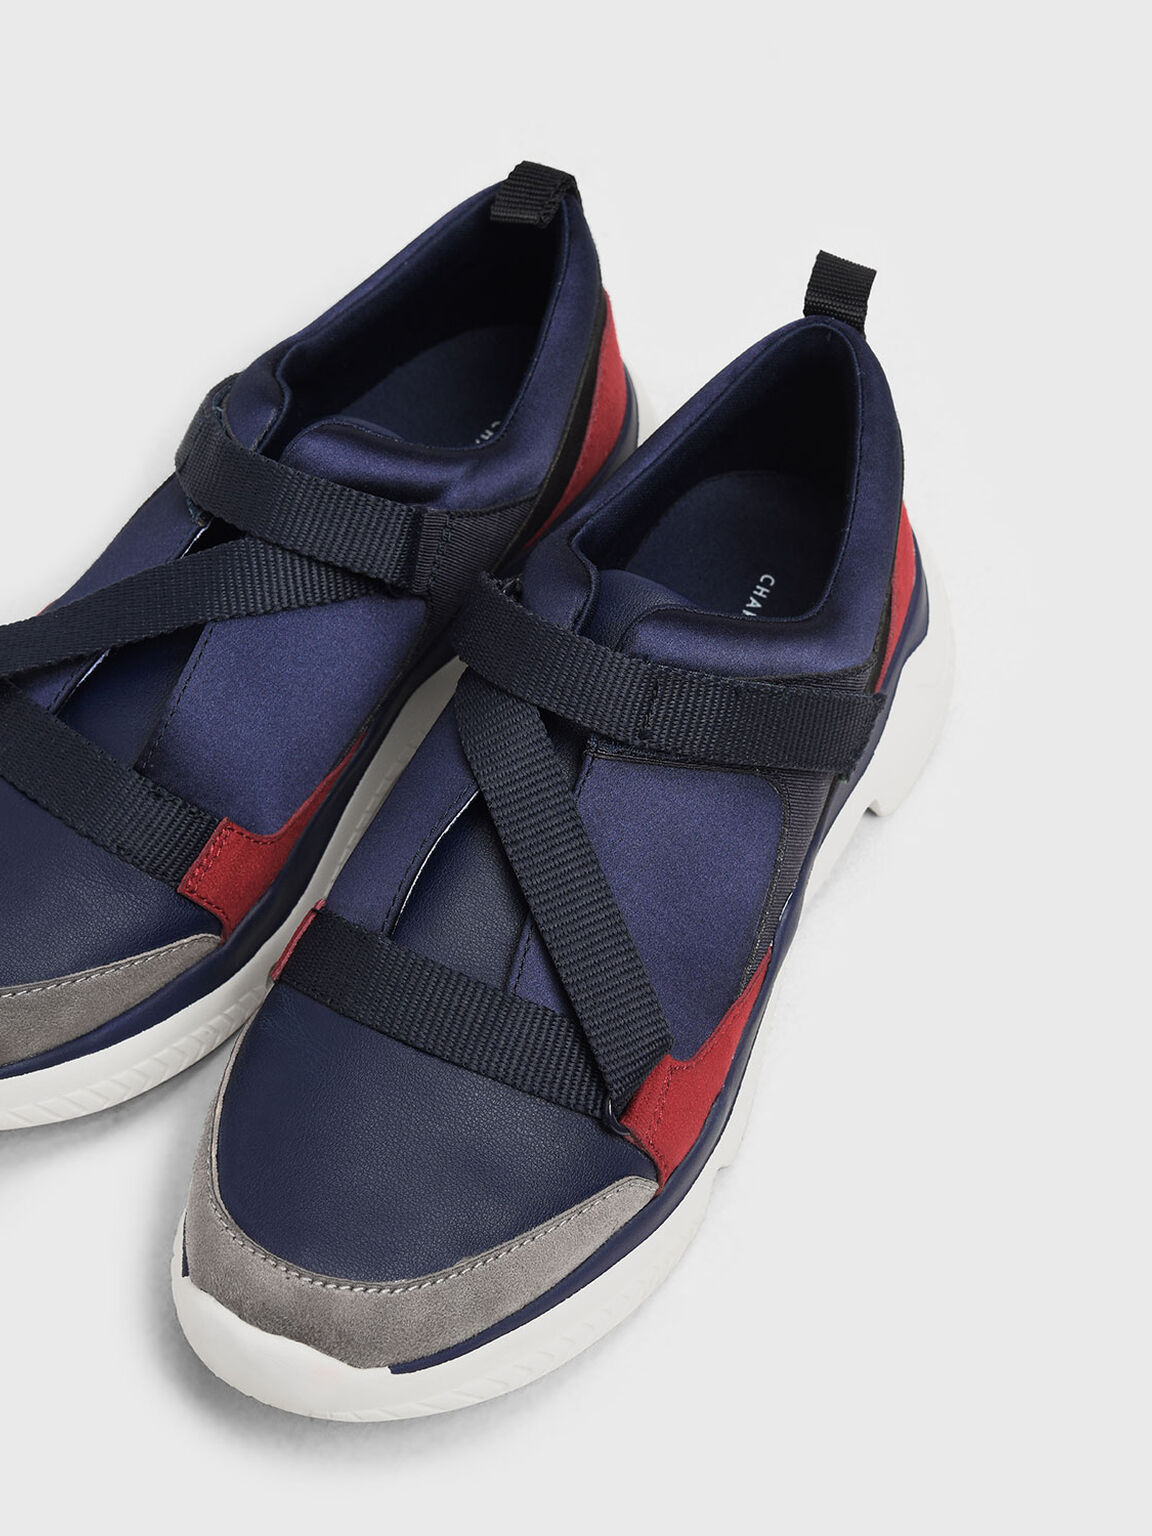 Velcro Slip-On Sneakers, Dark Blue, hi-res